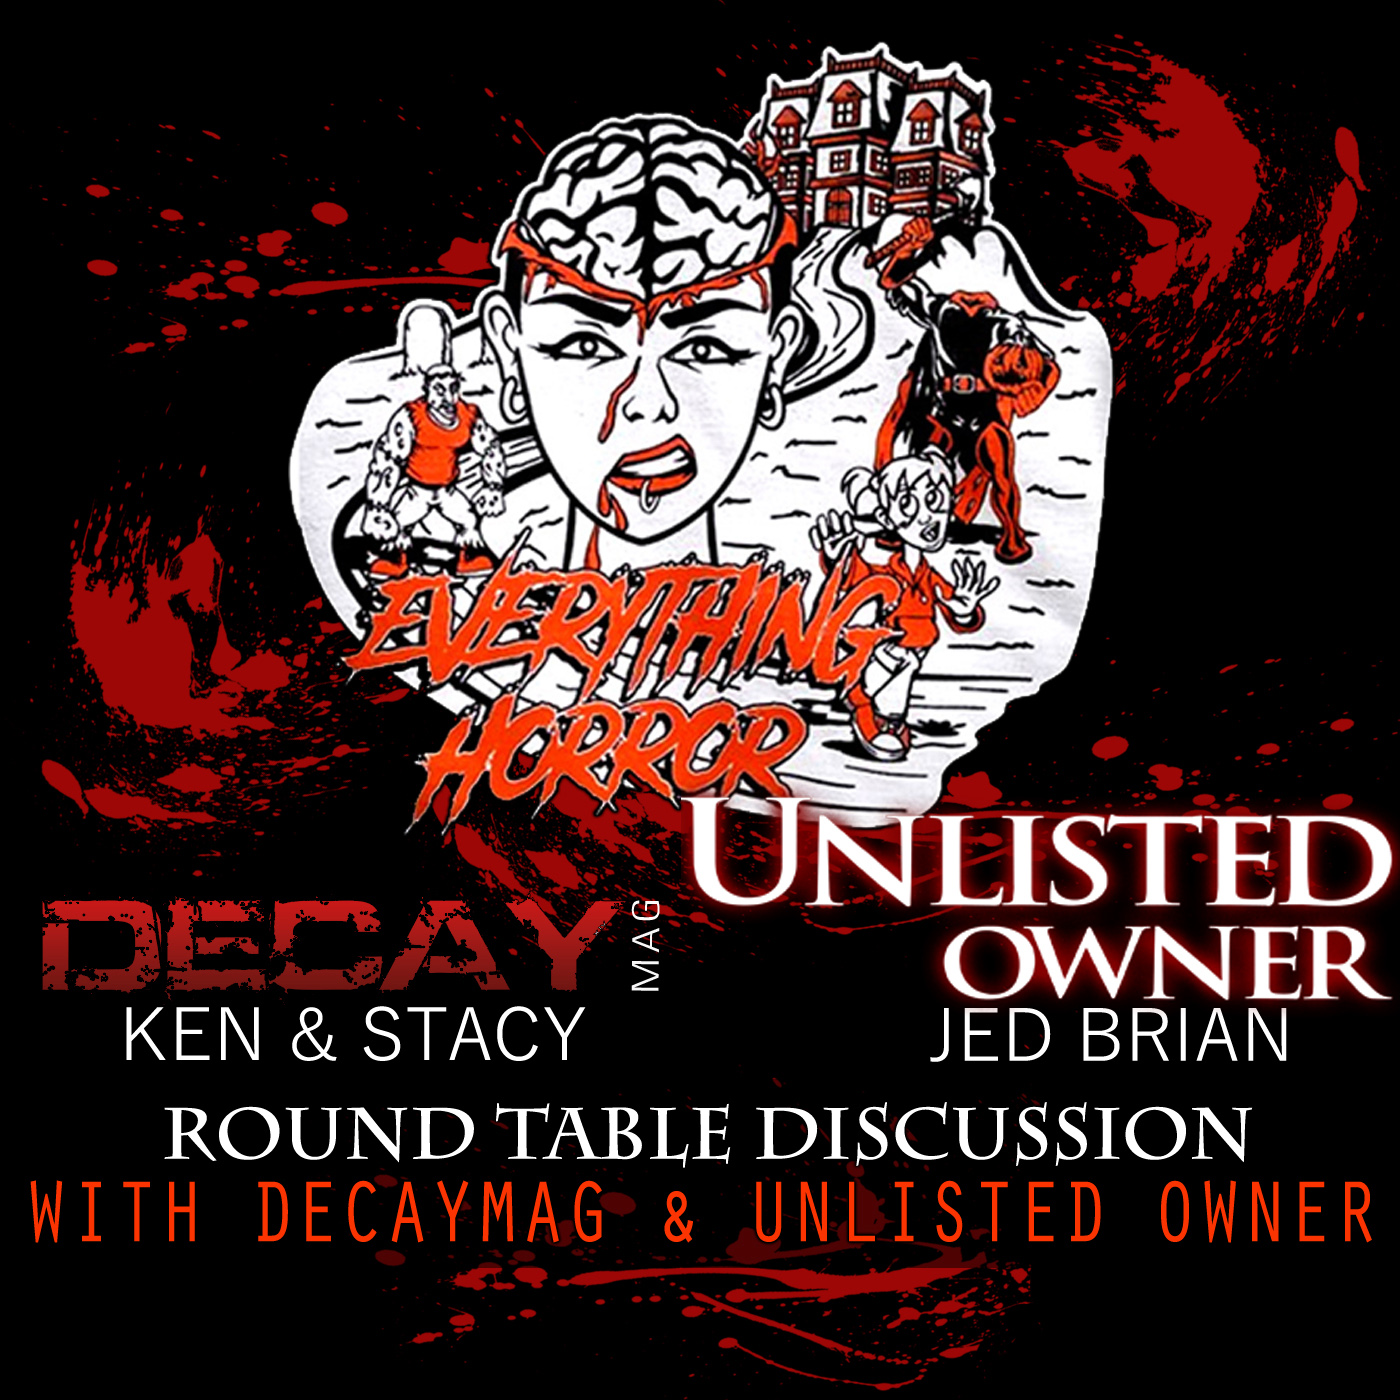 Round Table Part 1: With DecayMag & Jed Brian (Unlisted Owner)